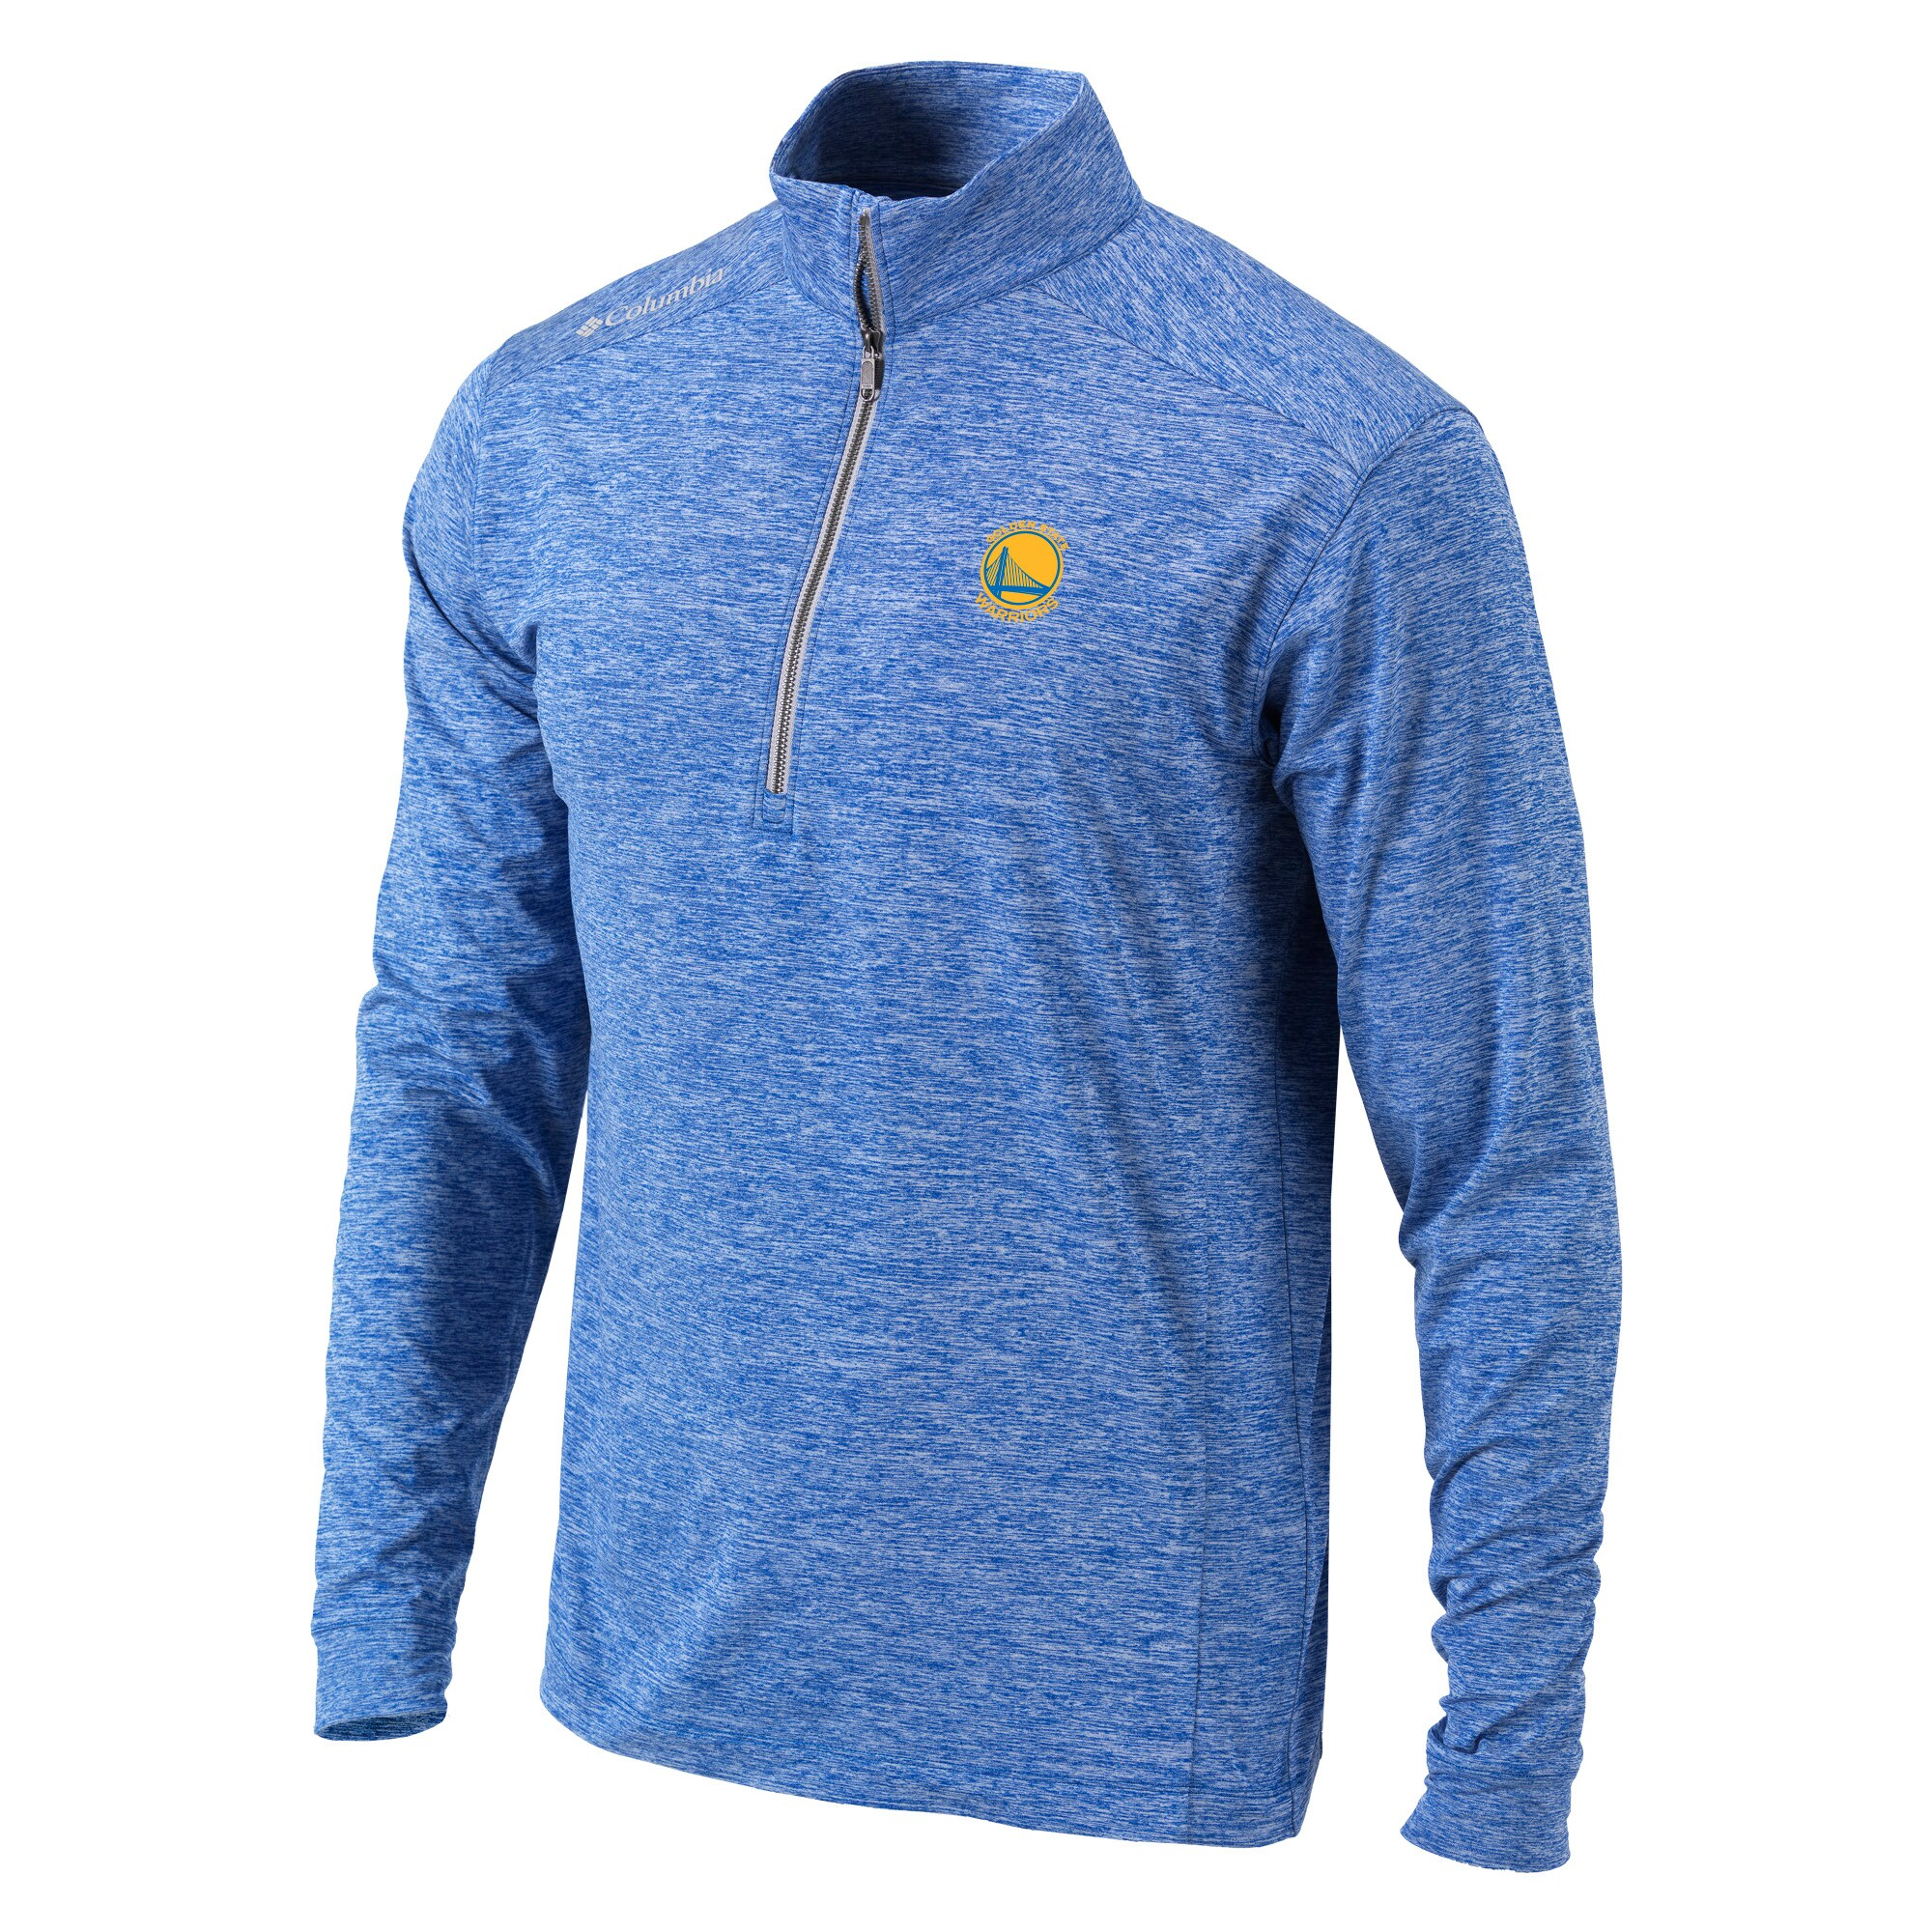 Golden State Warriors Columbia Omni-Wick Power Fade Half-Zip Jacket - Blue